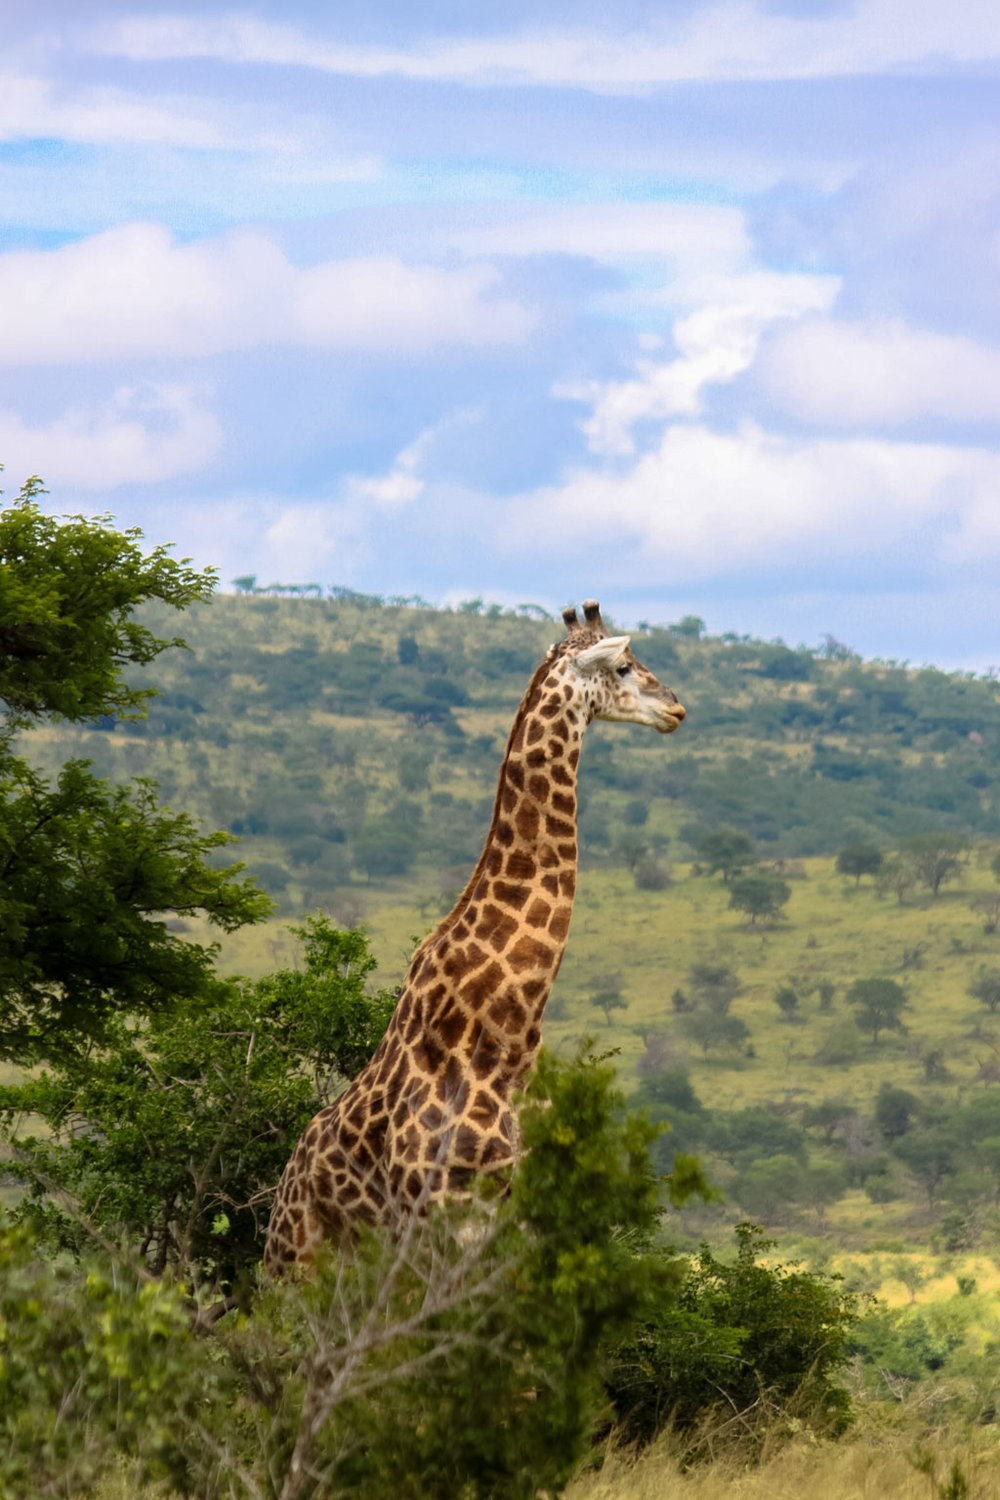 Holiday Destinations in South Africa - Giraffe in Hluhluwe Imfolozi Park